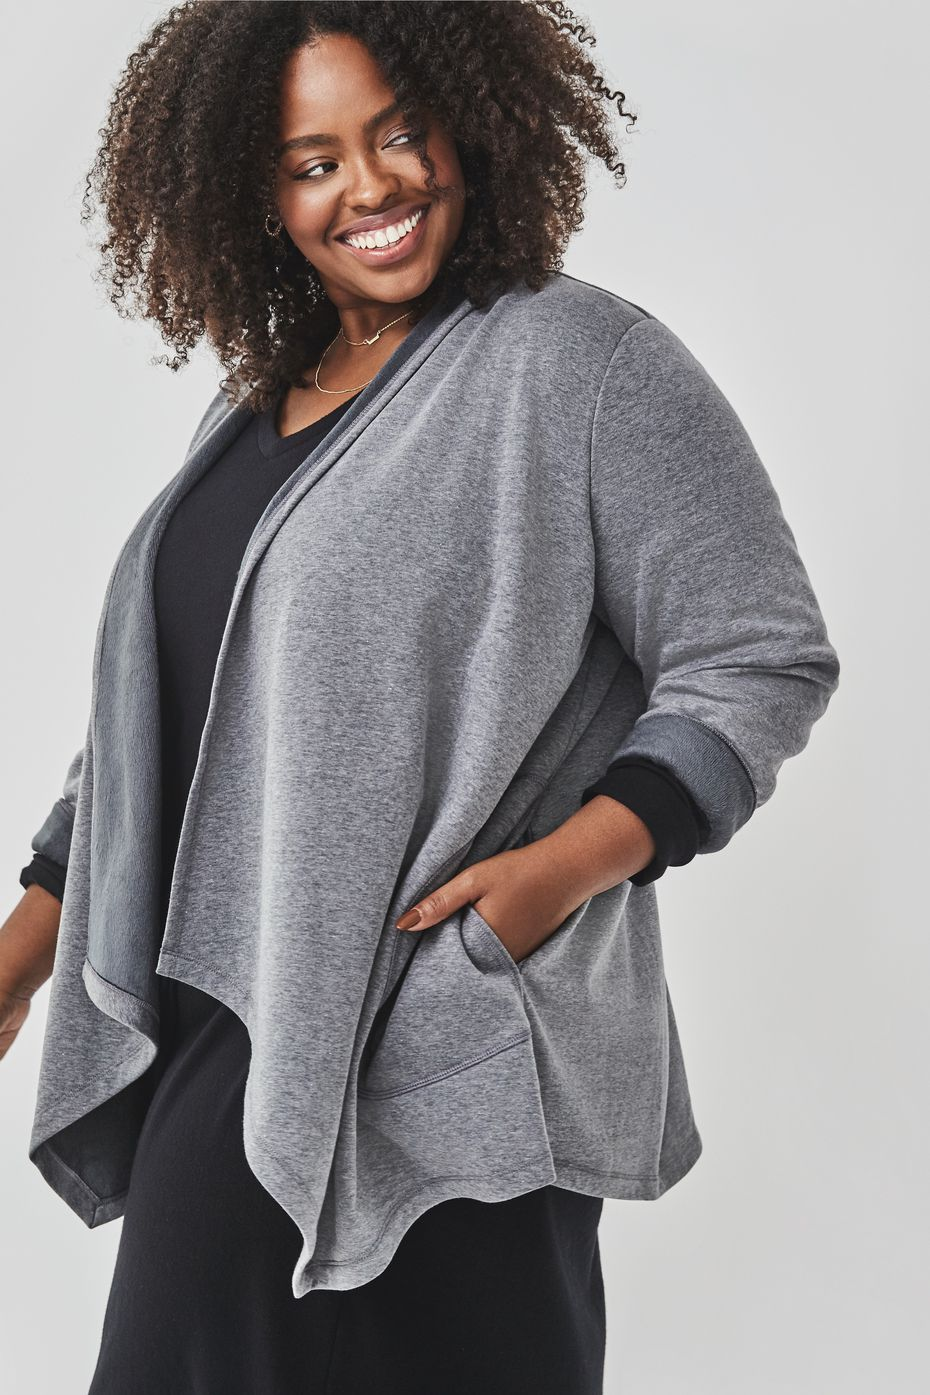 J.C. Penney's Stylus brand of apparel comes in neutral colors that can easily be mixed and matched and paired with other brands.